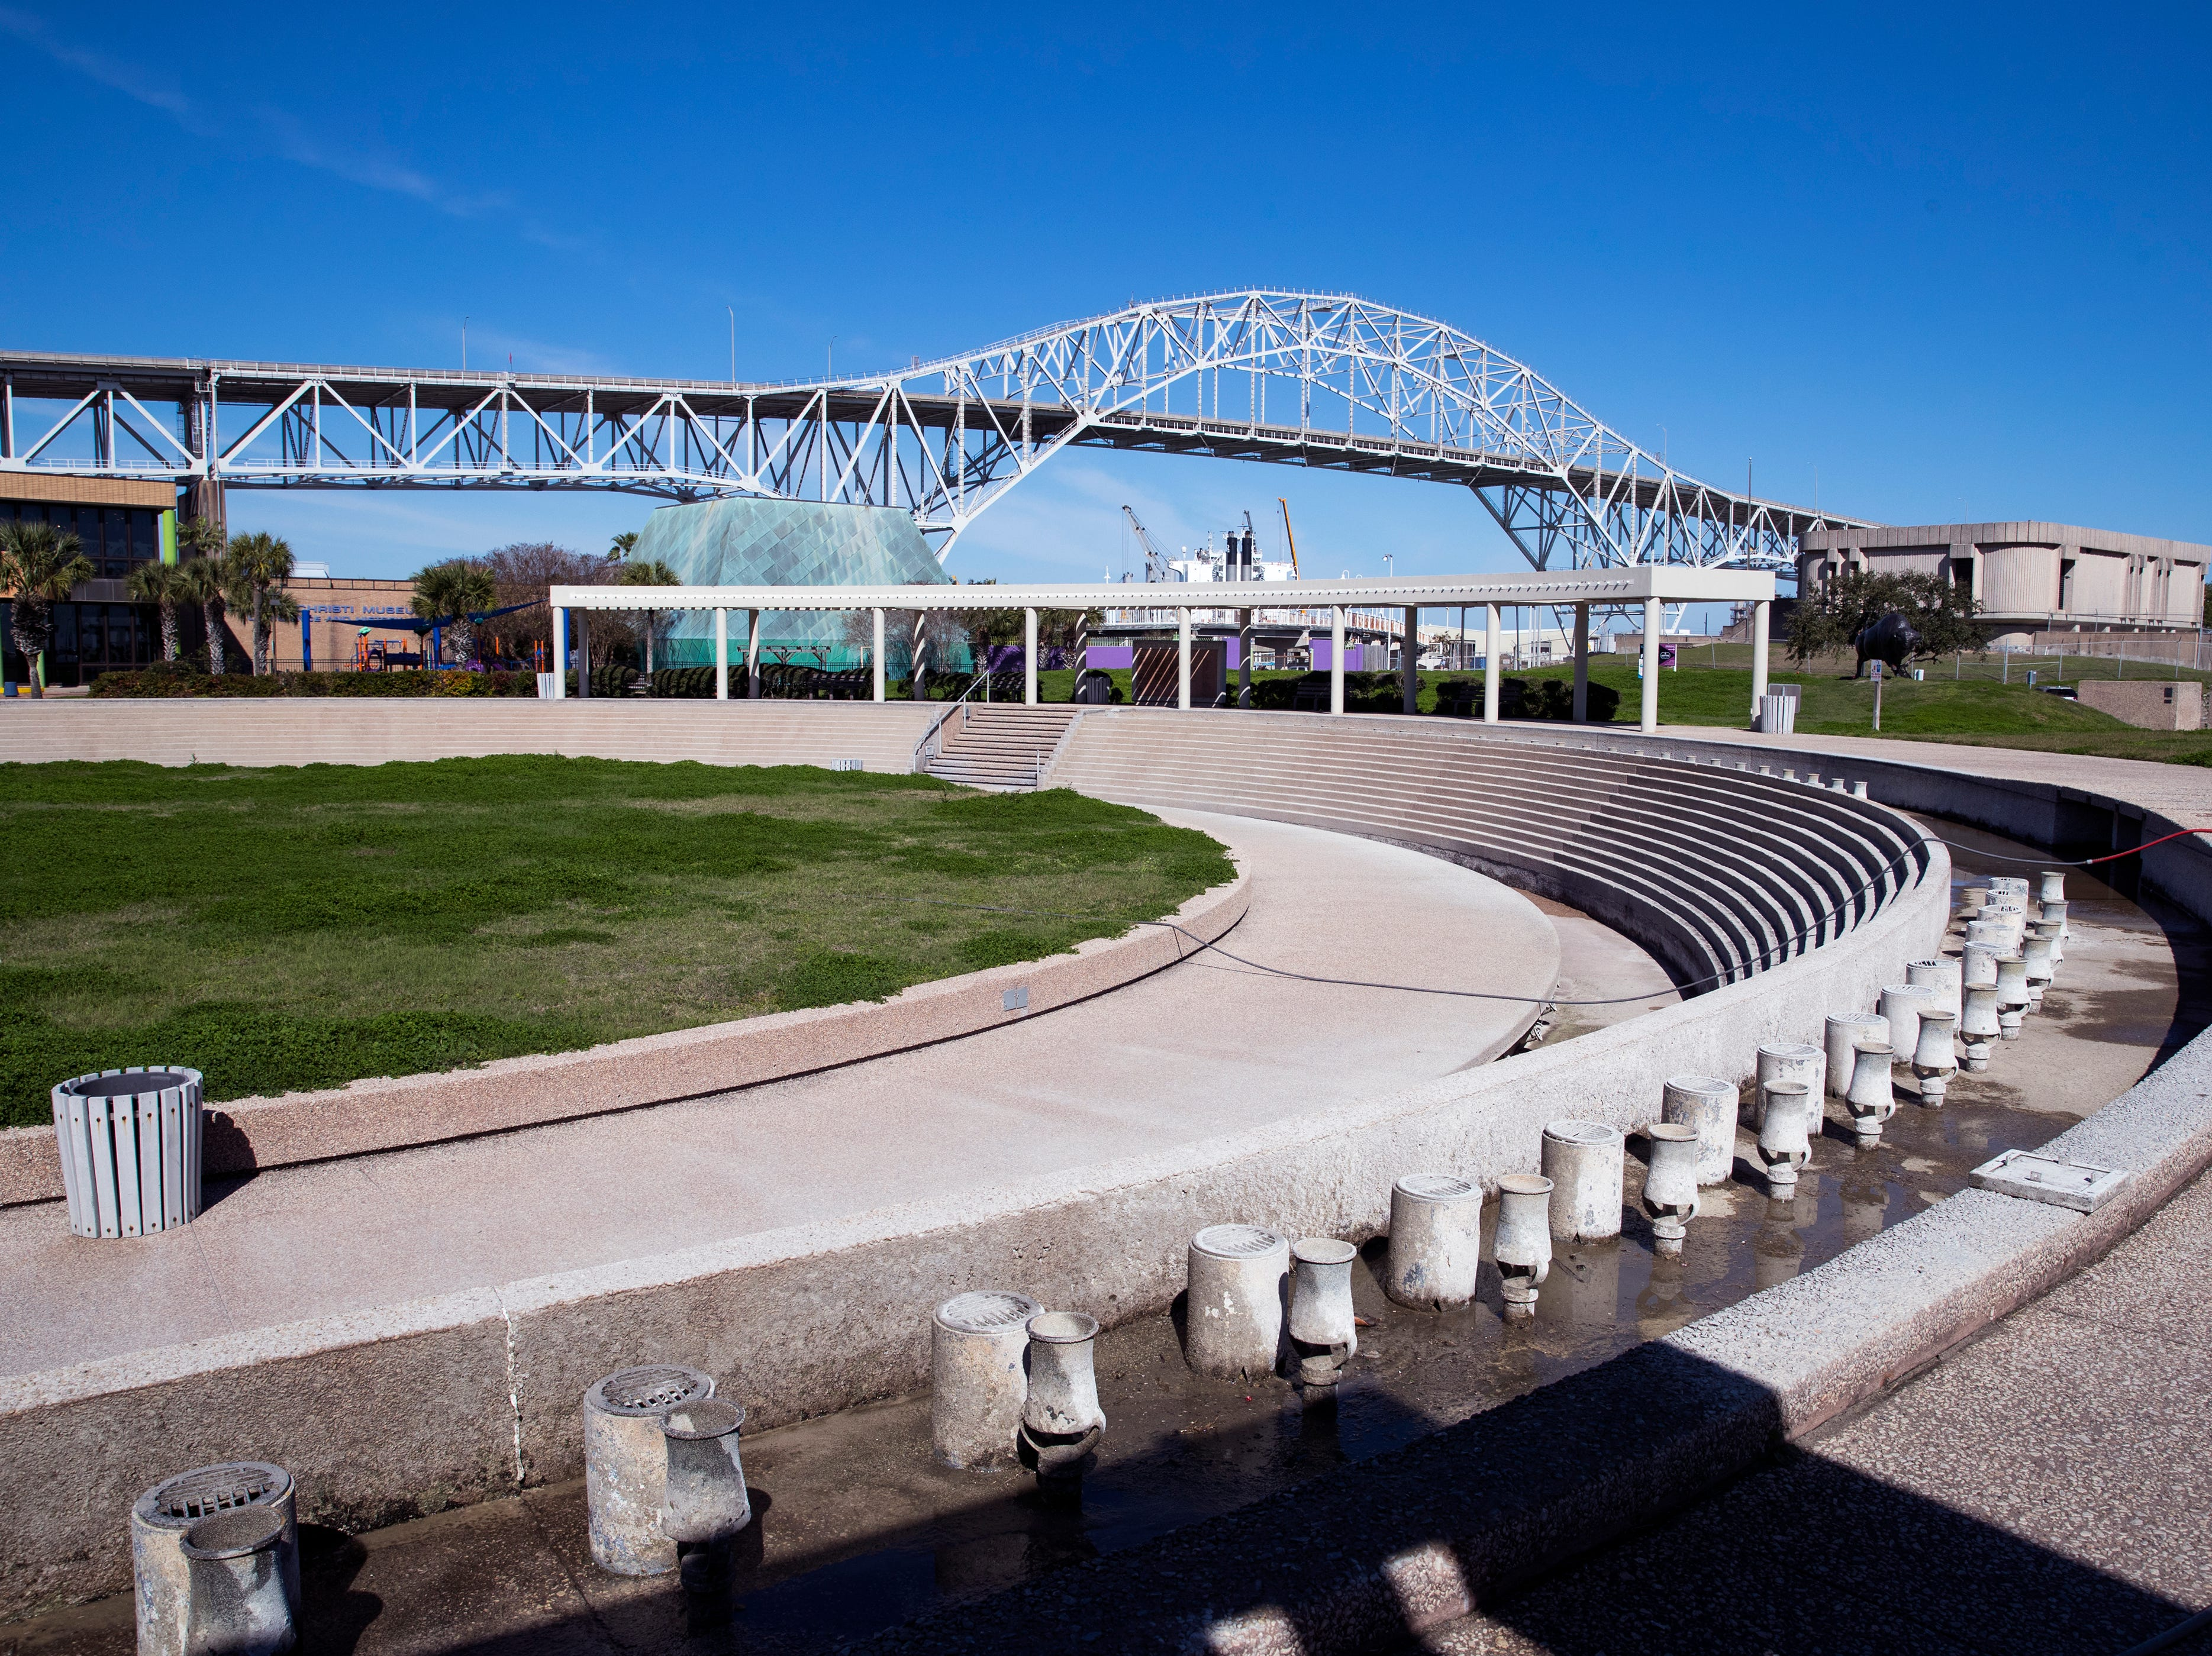 The Corpus Christi Watergarden has been inoperable since Hurricane Harvey made landfall in Aransas County in August 2017, and city officials are still trying to identify how to pay for repairs to the downtown destination.